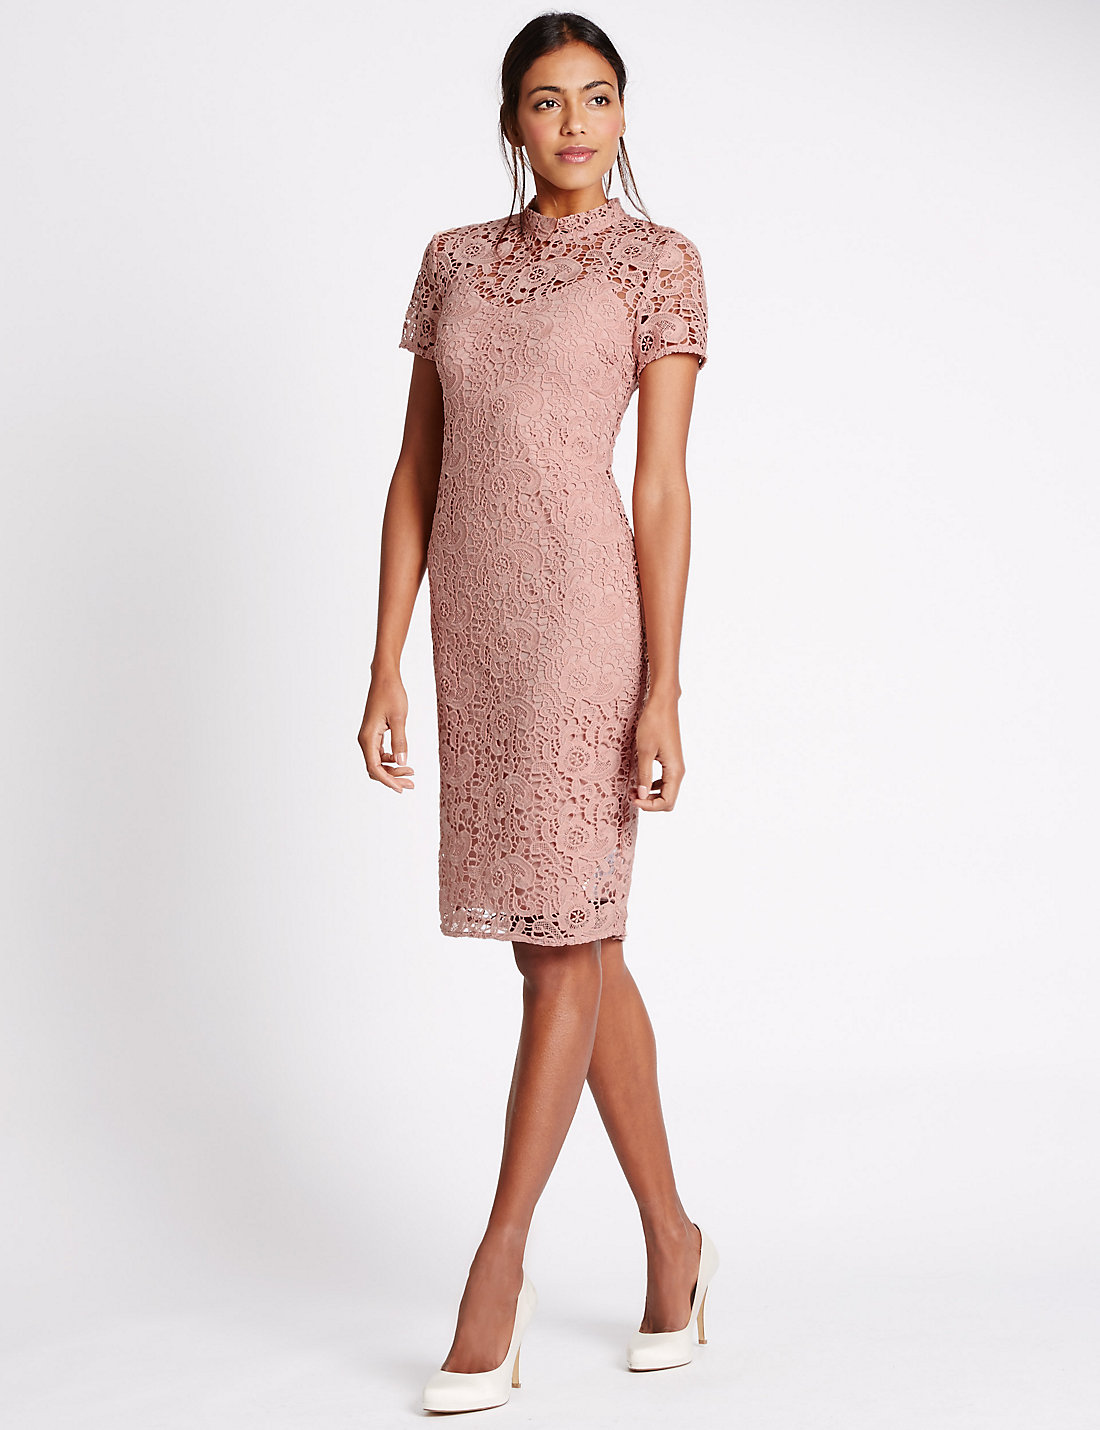 Great Floral Lace Dress, £79 From Mu0026S